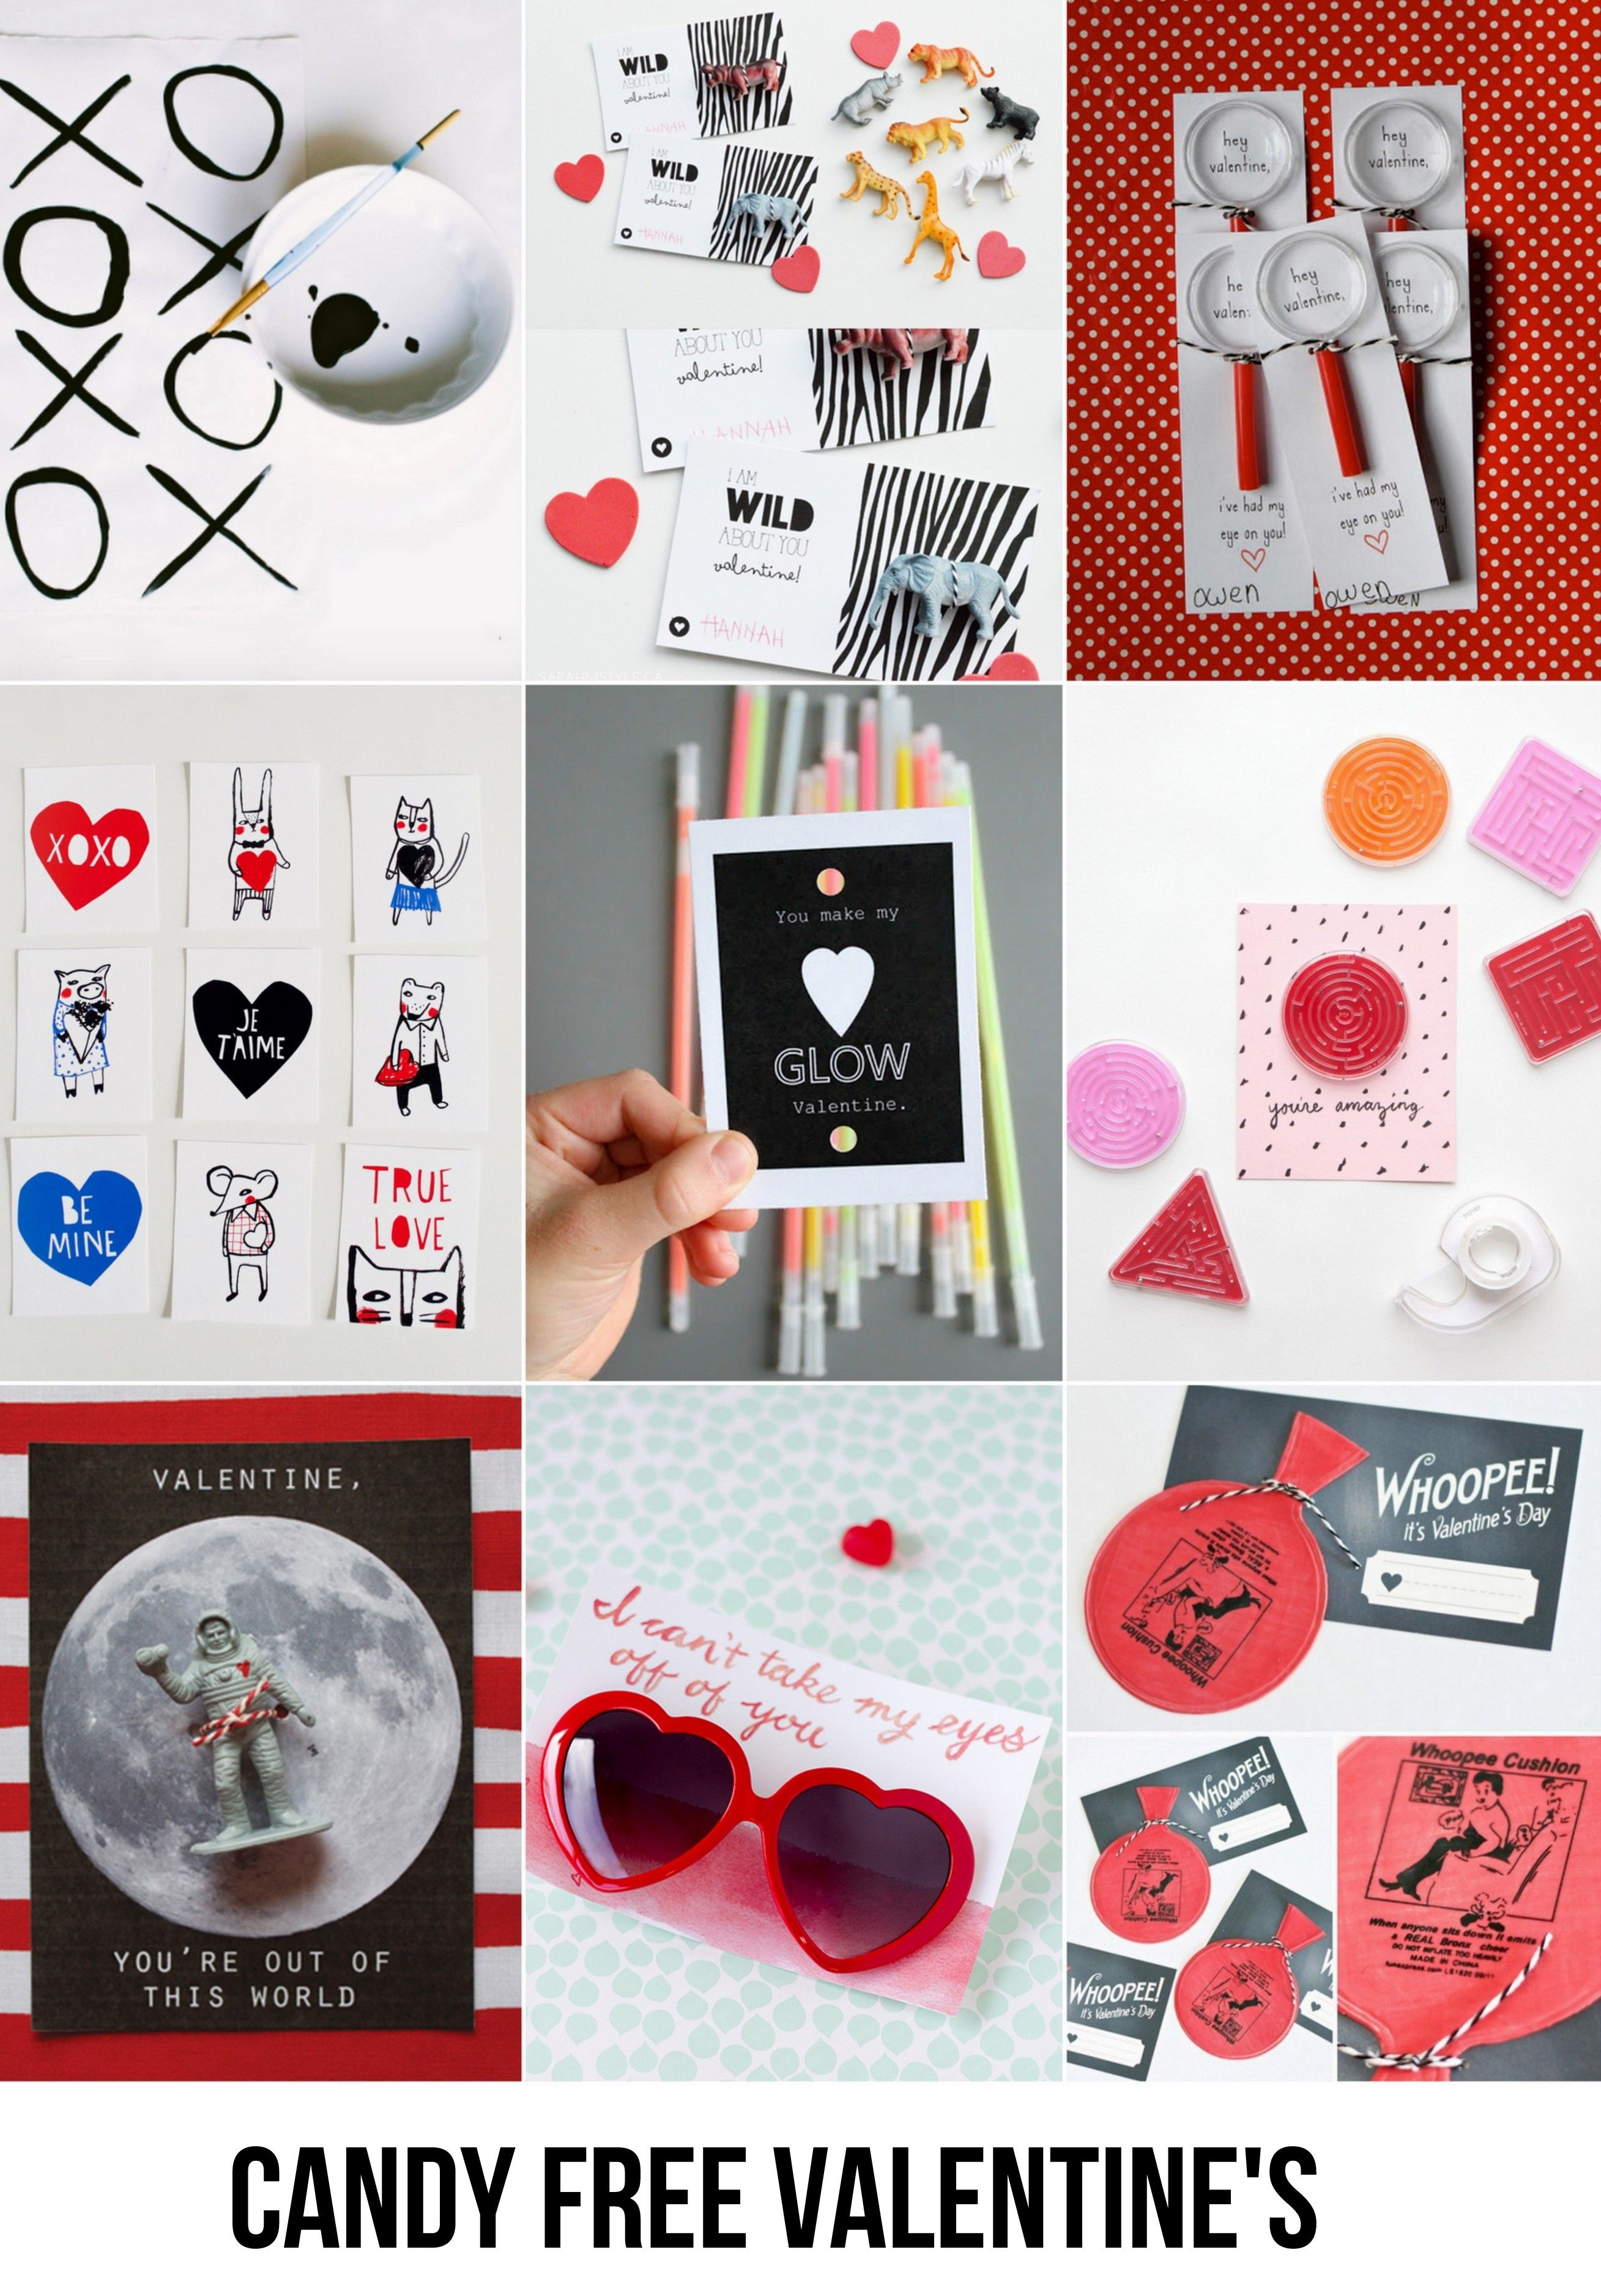 Candy Free Valentine's gifts for the kids